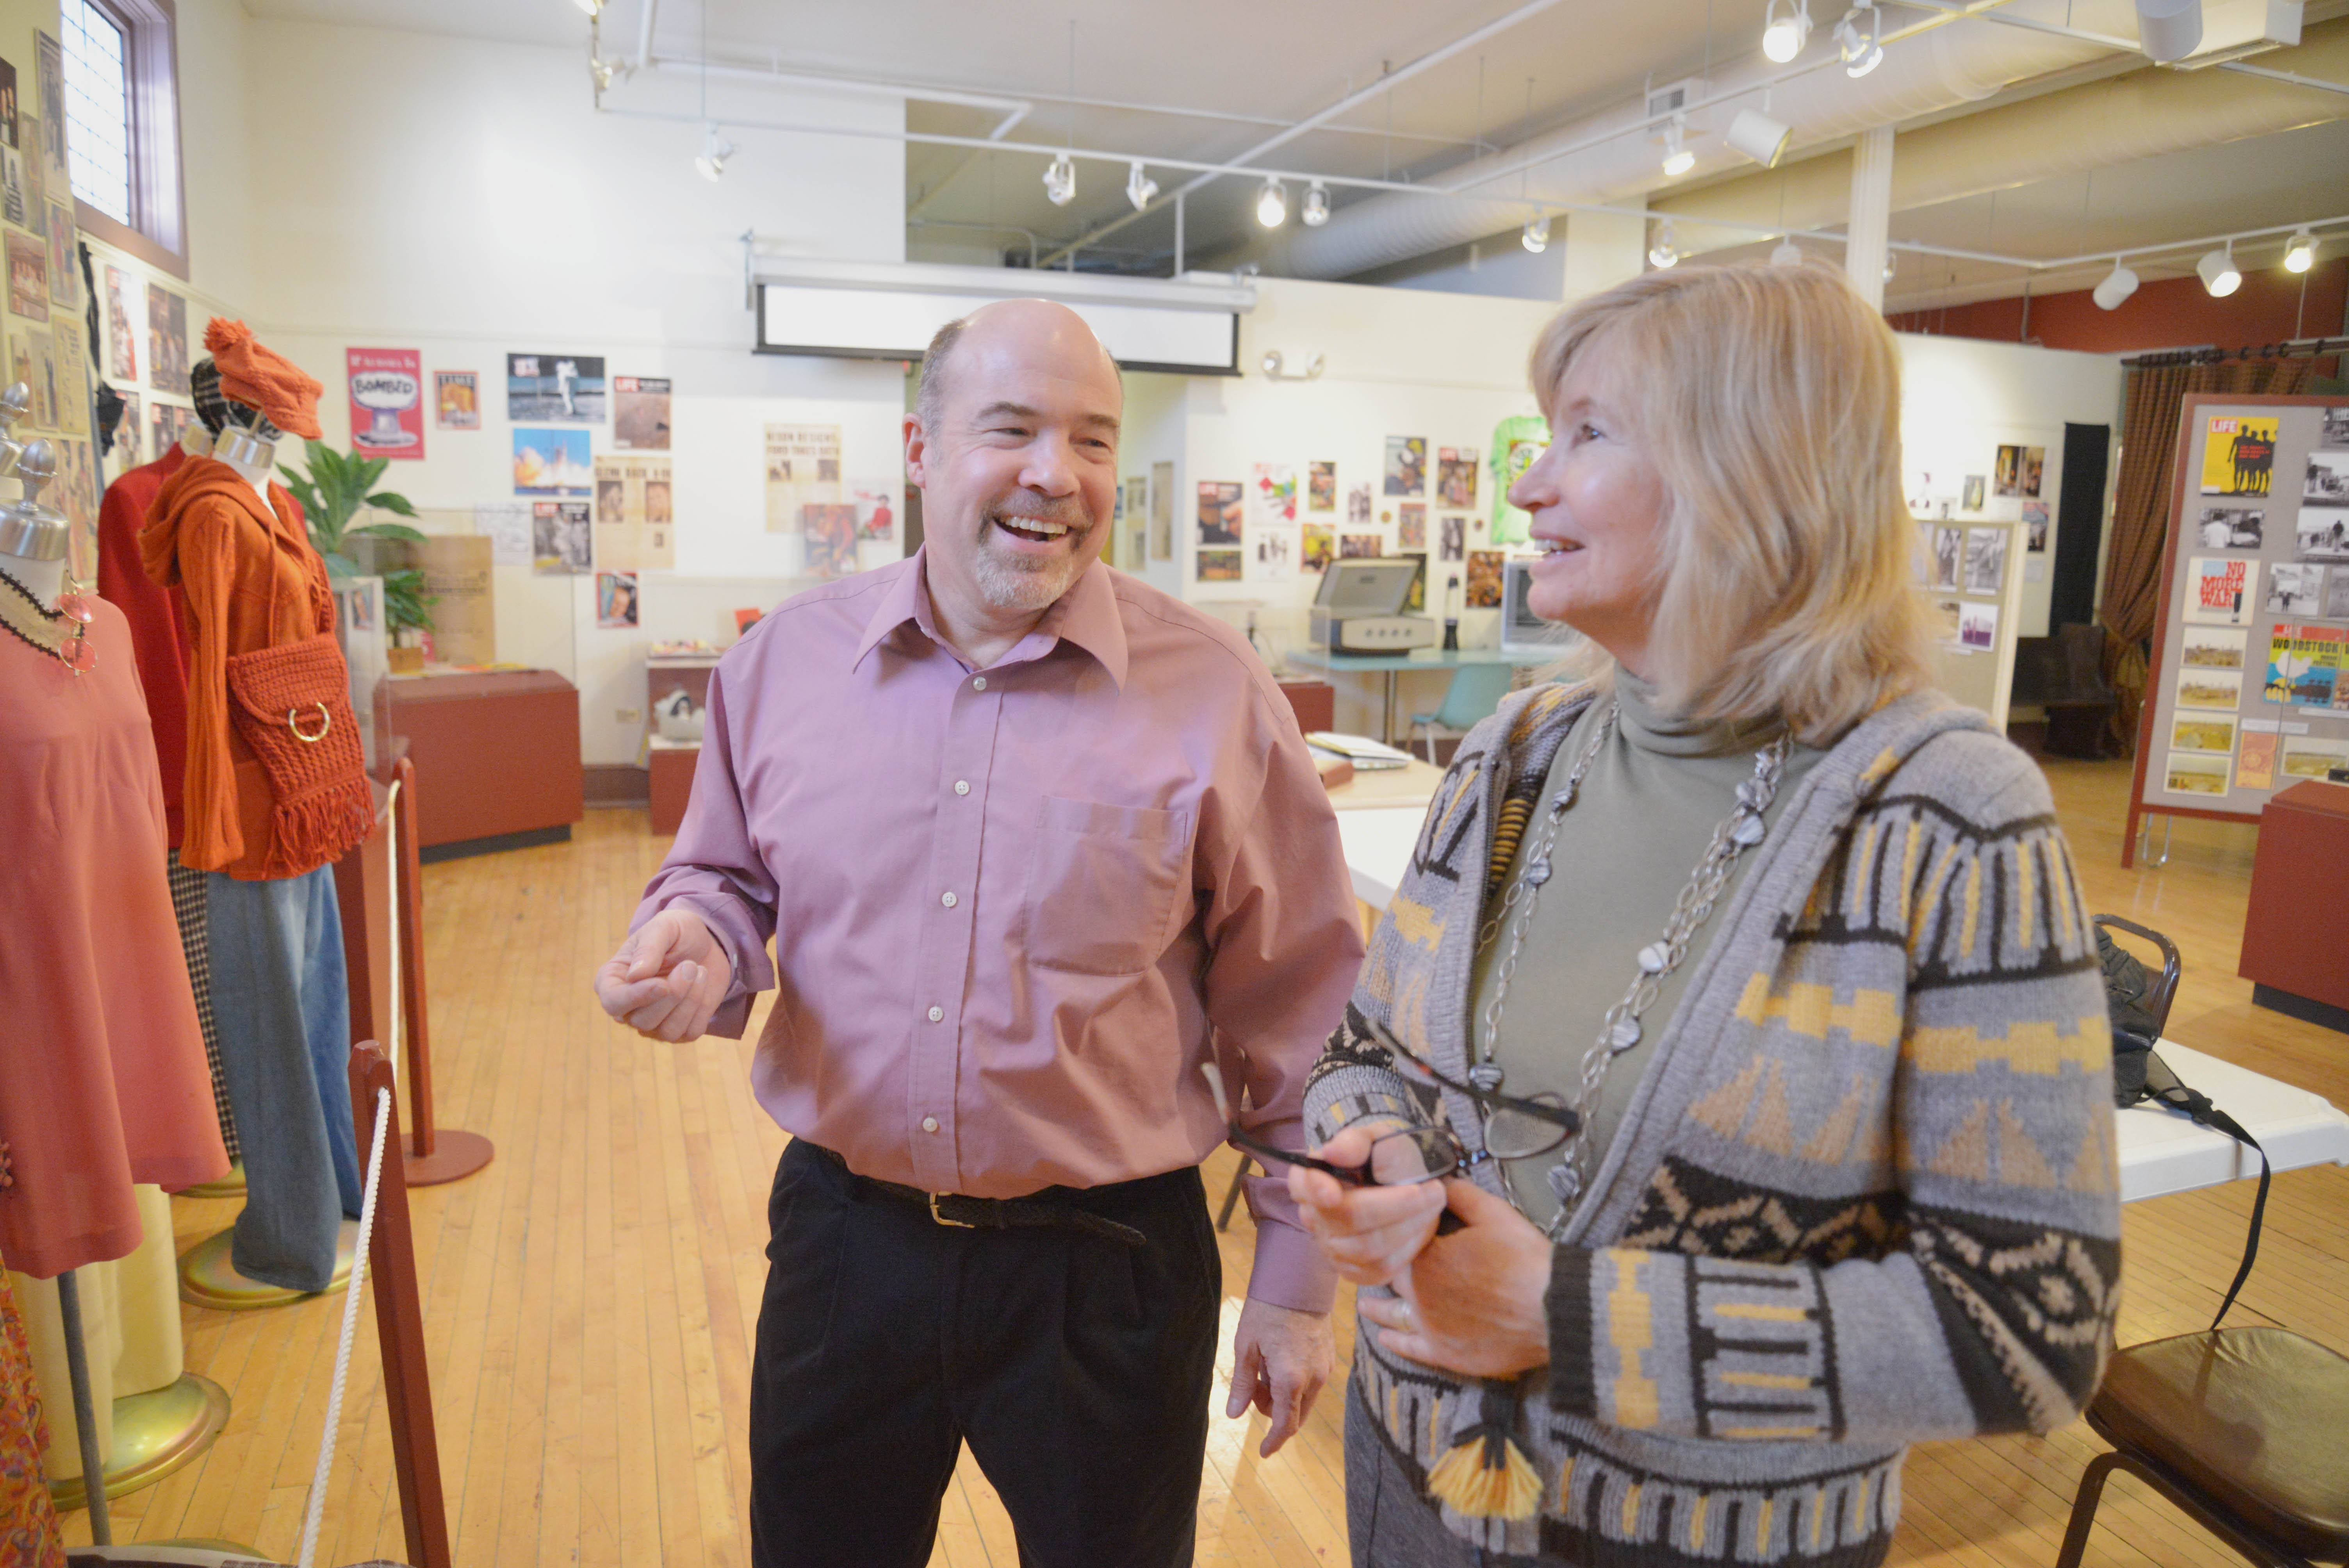 John Jaros, executive director of the Aurora Historical Society, chats with Laura Nicholson-Tom of Aurora about fashion styles of years past. This is one of the many exhibits on display at the museum.